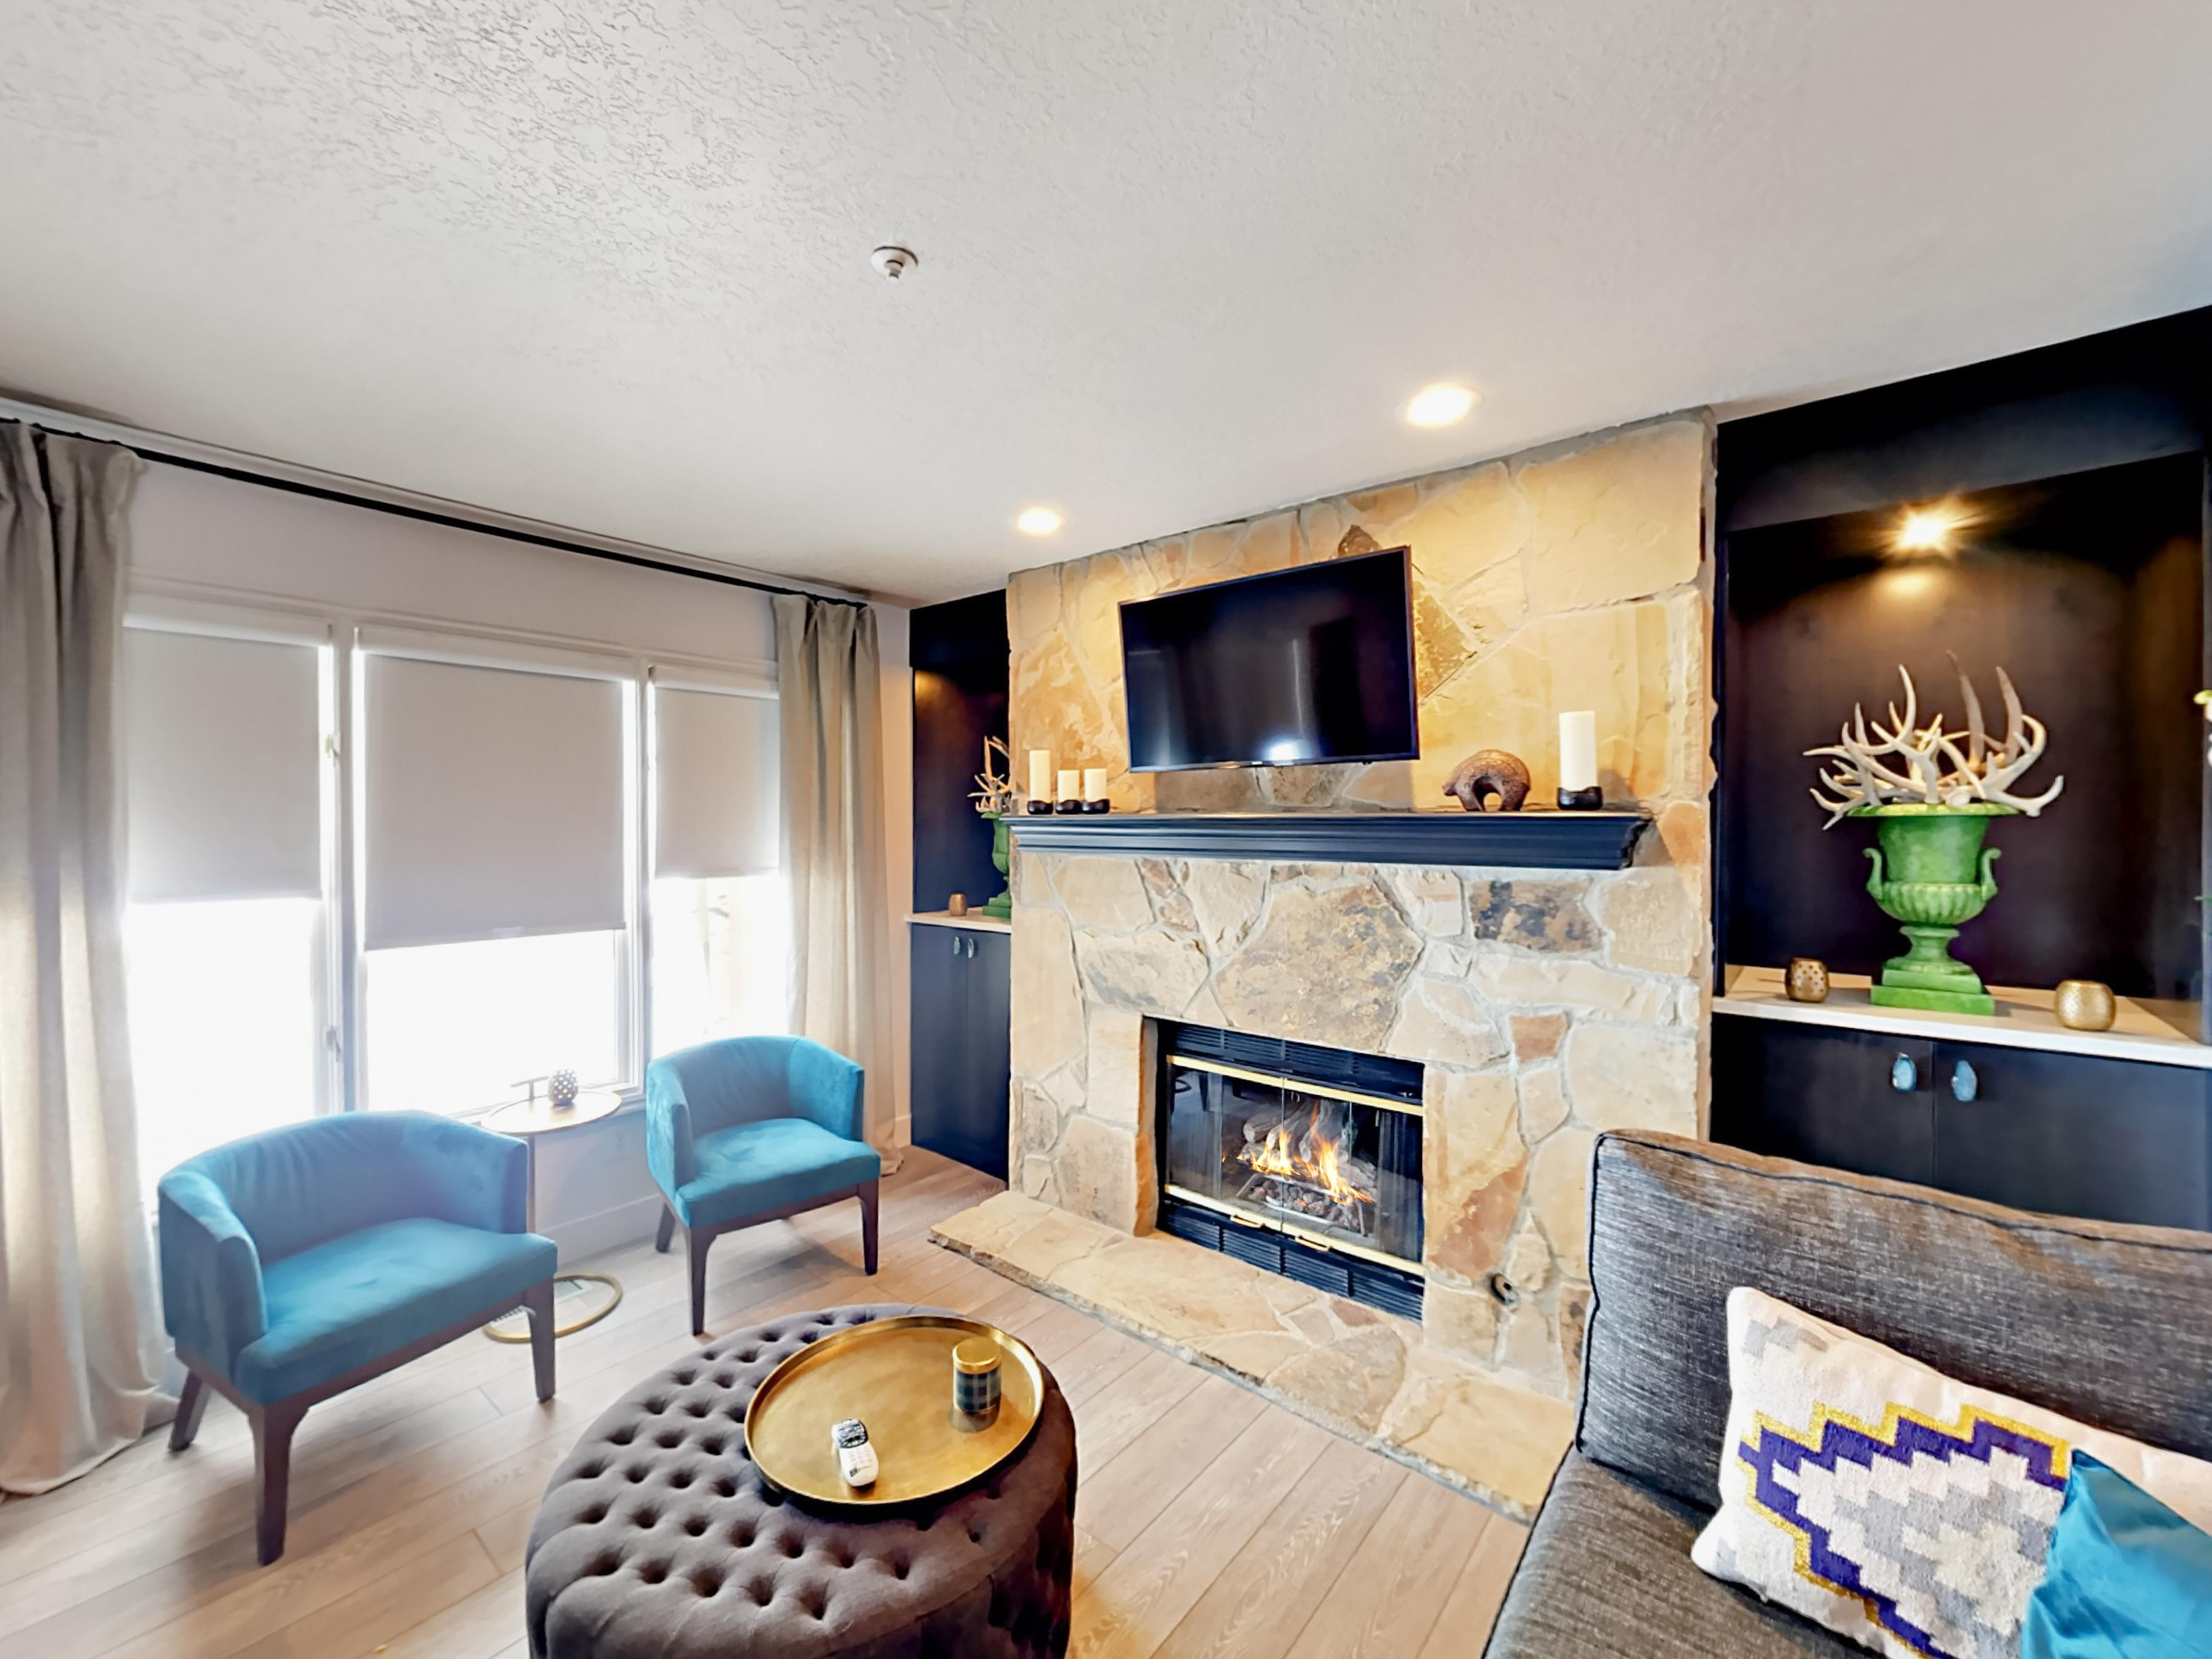 Welcome to Park City! This rental has a luxurious living room with gas fireplace, flat screen TV, and complimentary Wi-Fi.